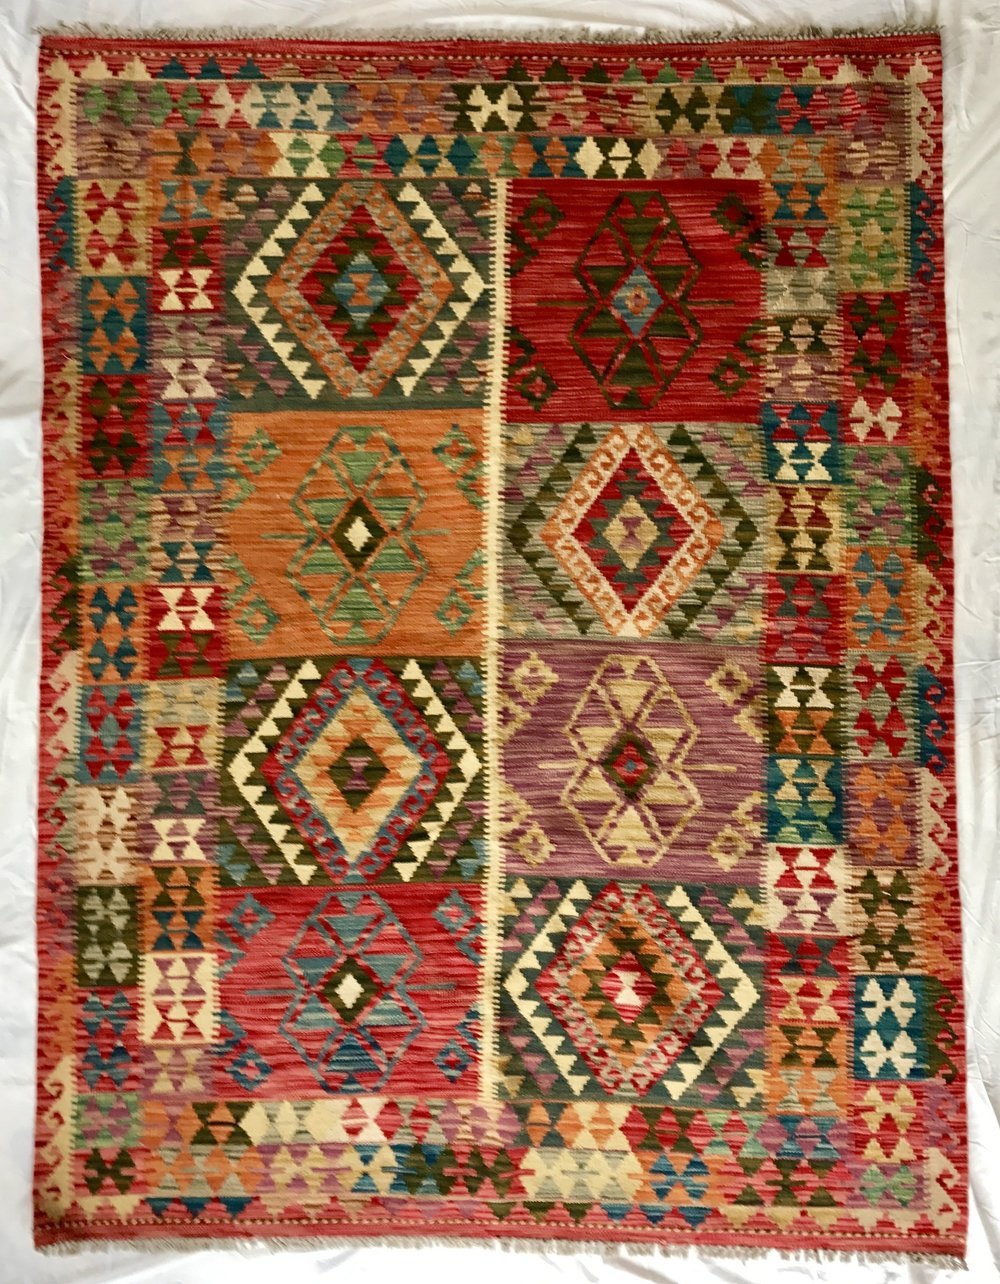 Fine Afghan vegetable dye kilim rug (200*153 cm)